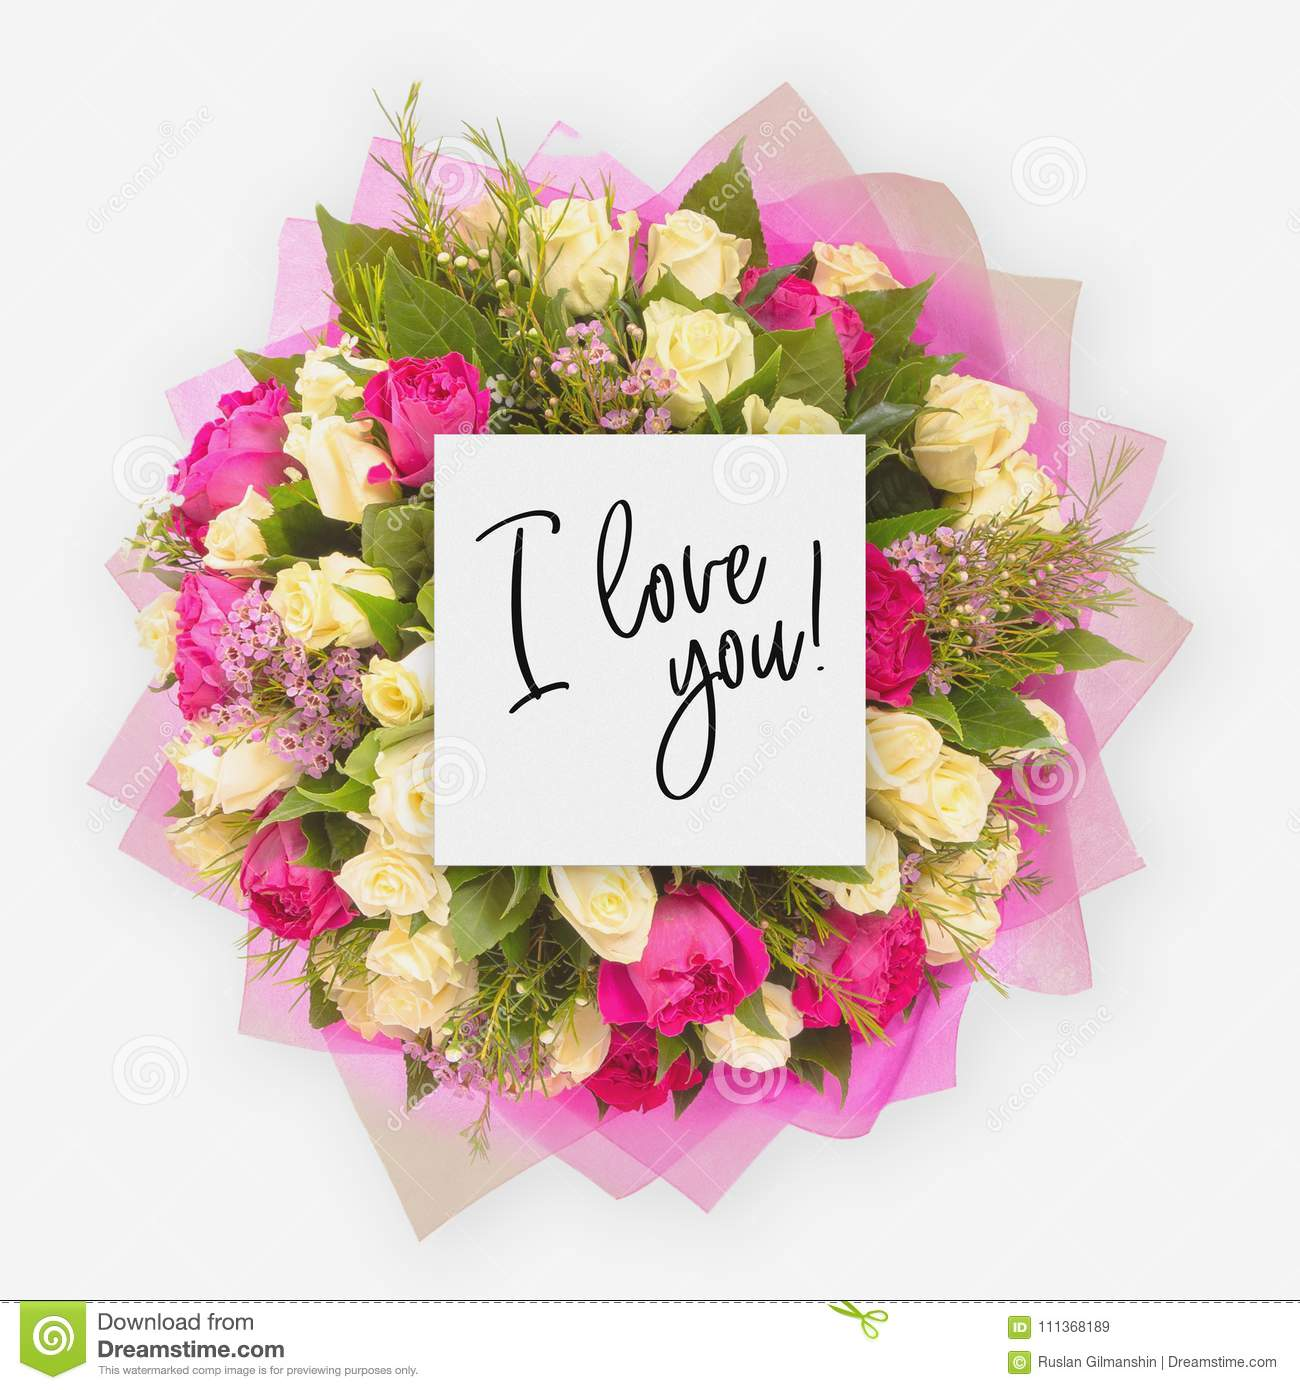 fresh flowers bunch and card with words i love you written